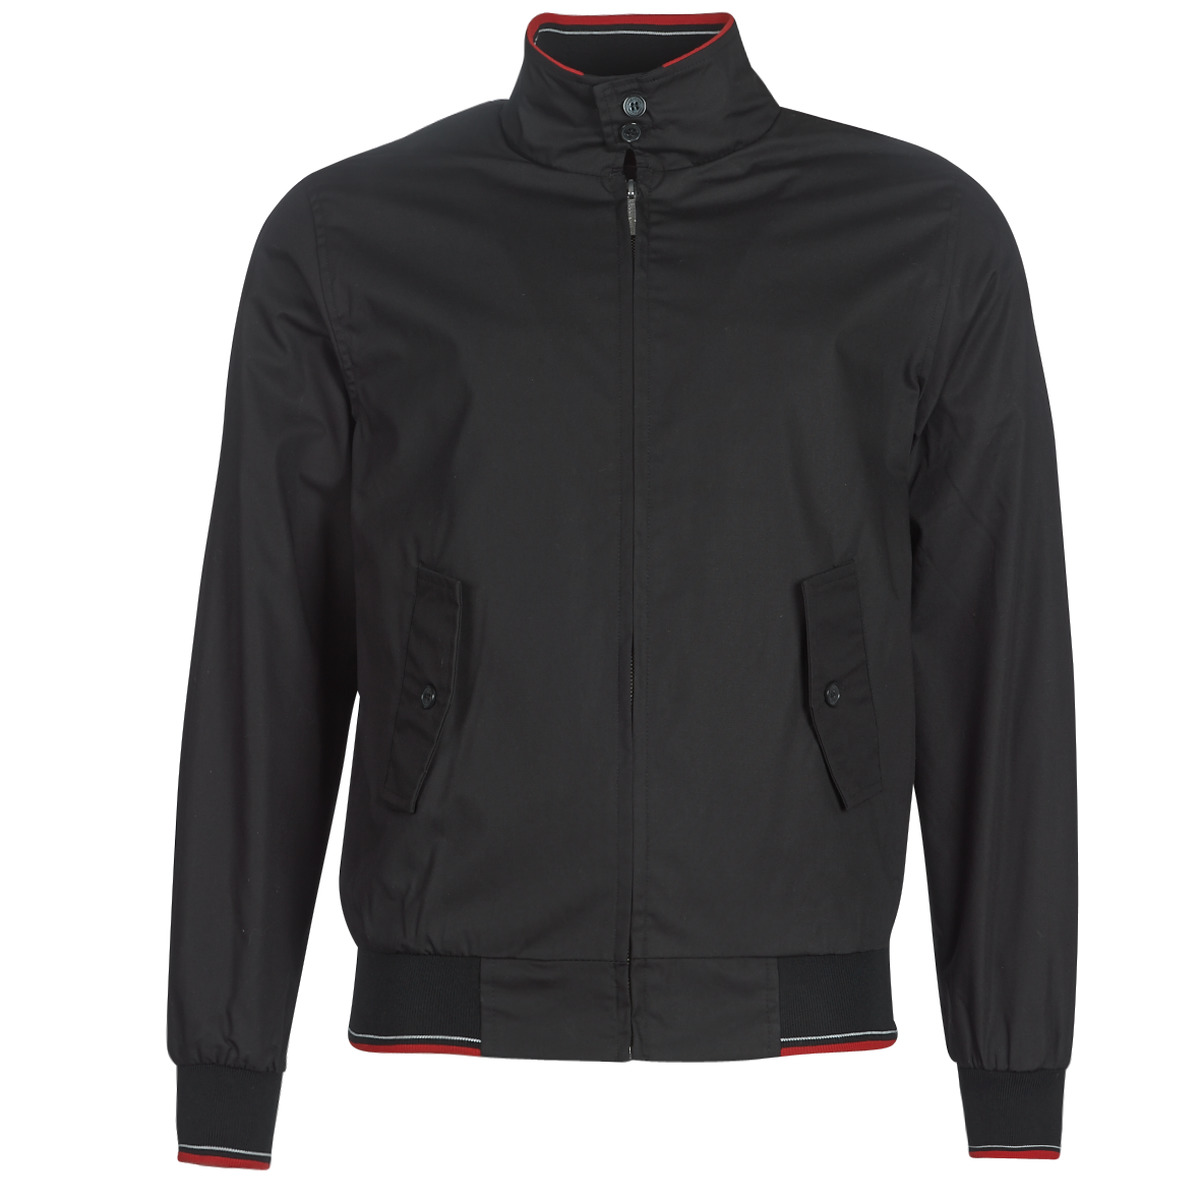 Vindjakker Harrington  MICK